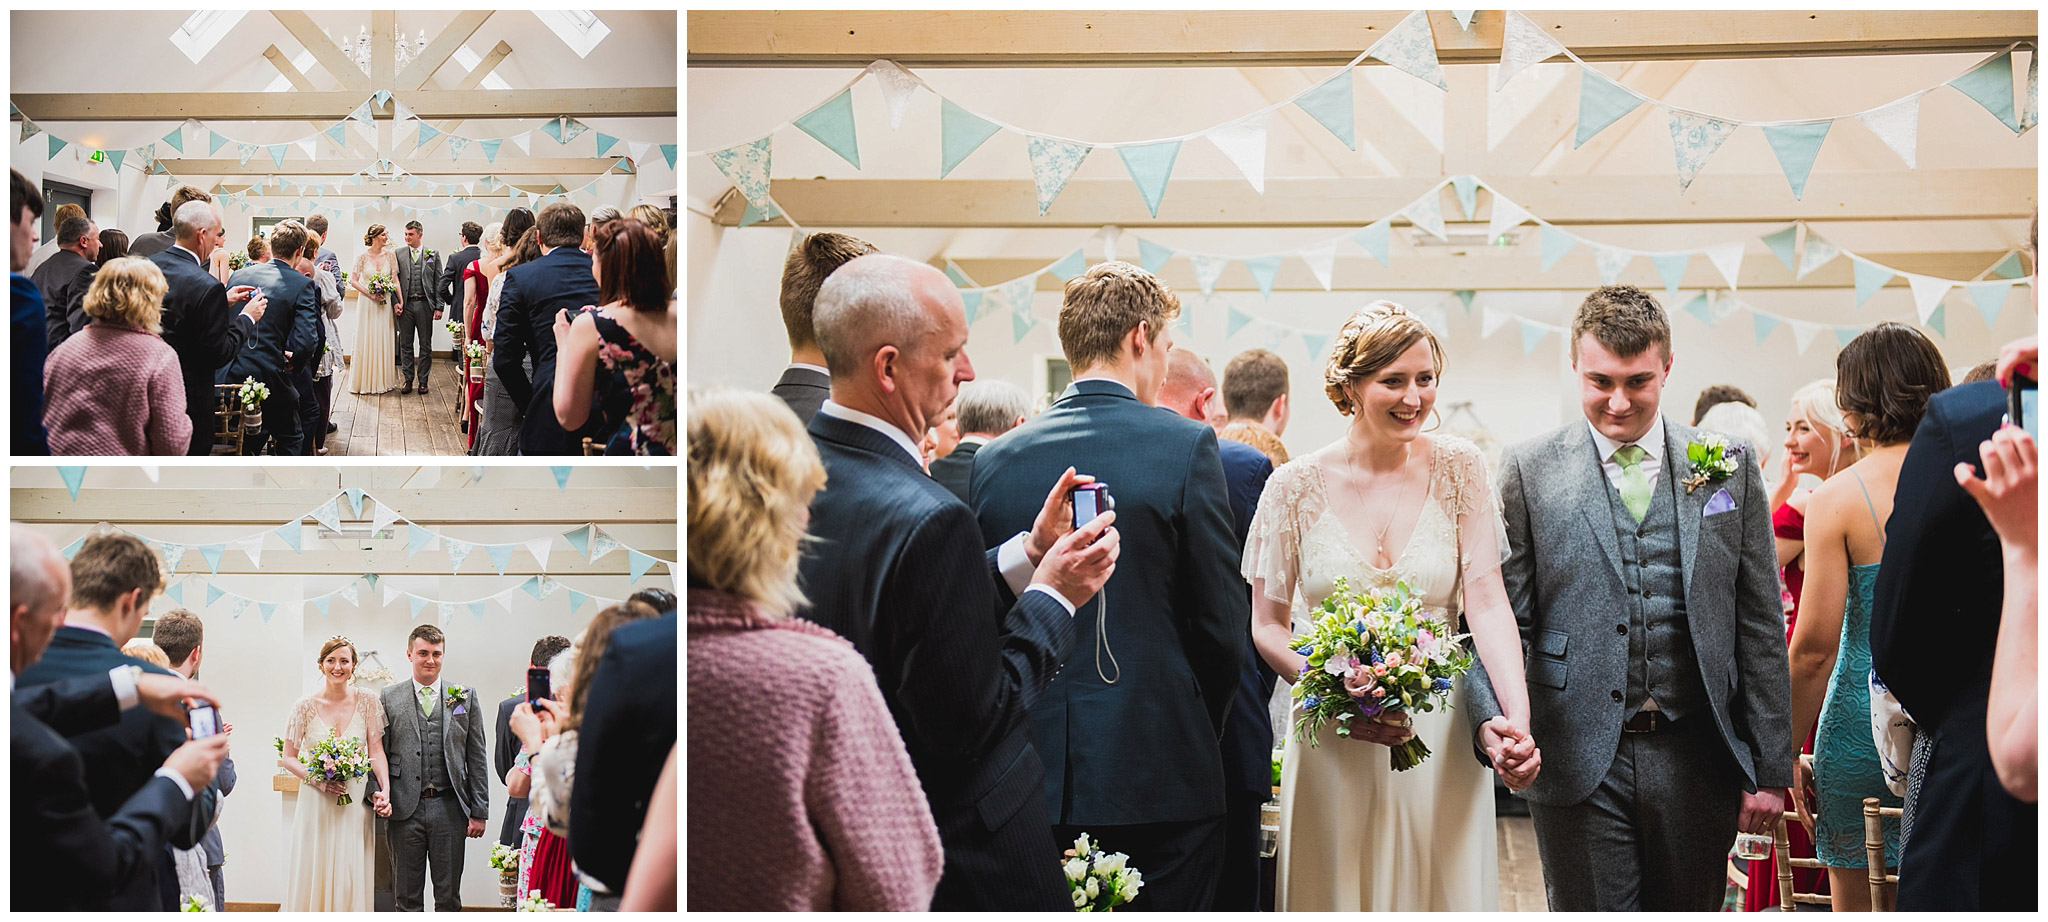 Sarah-&-Dan-The-Old-Vicarage-Wedding-Venue-Dorset-Photographer-21